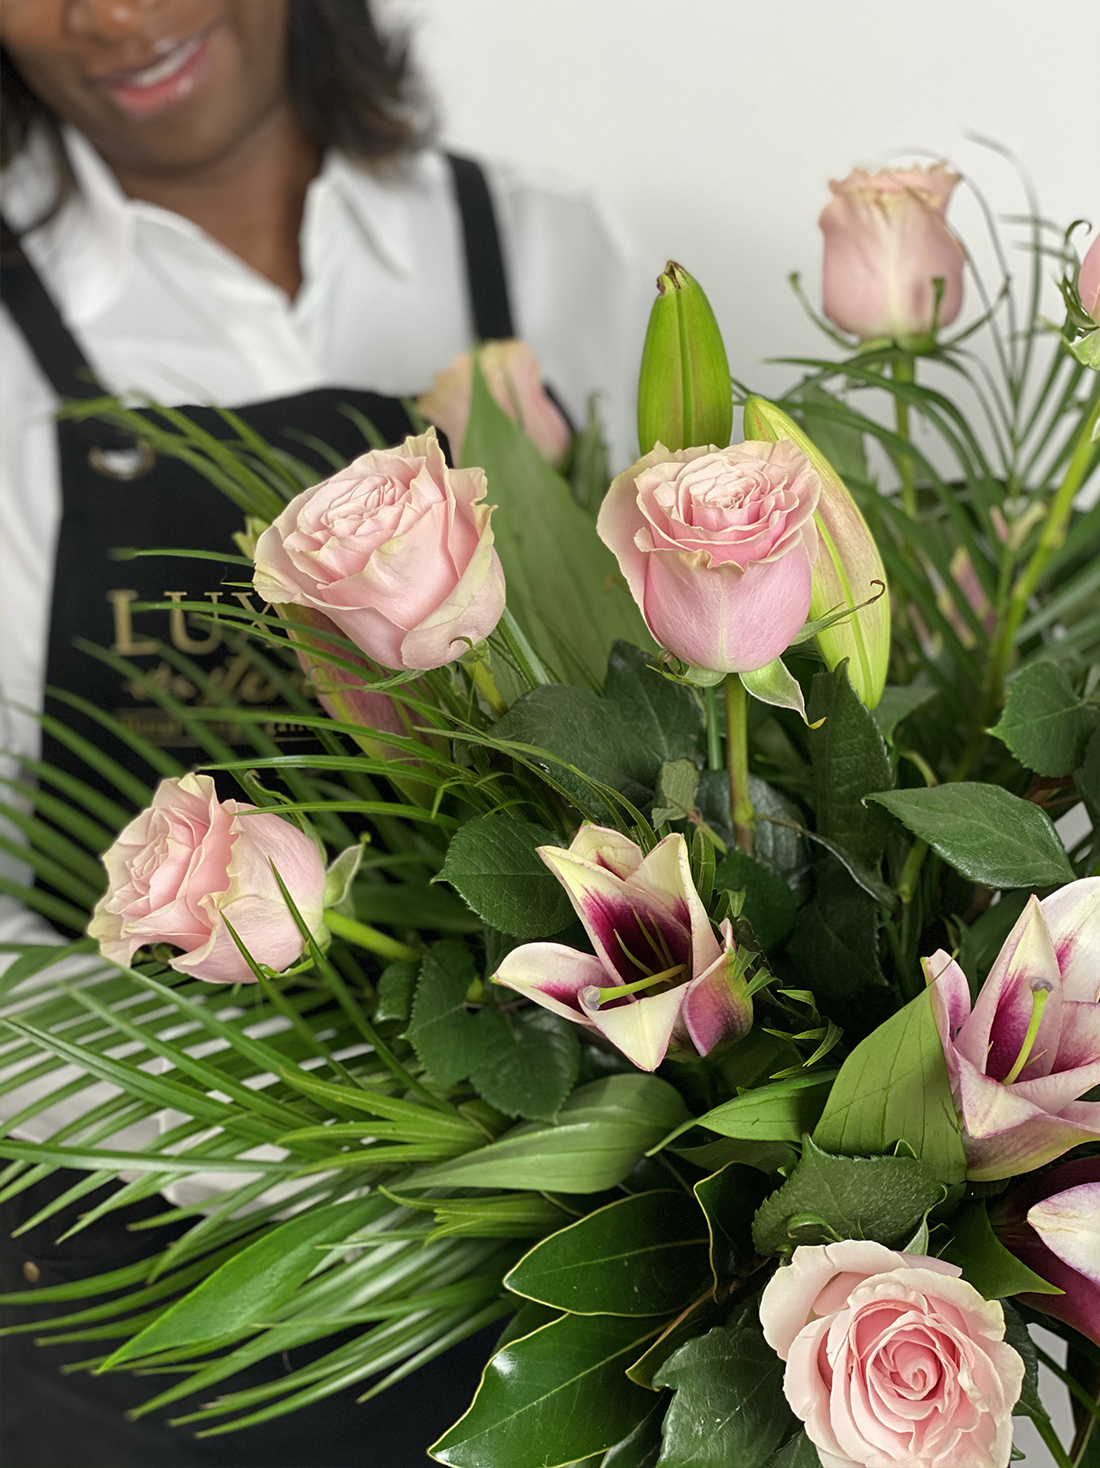 What different types of flowers mean